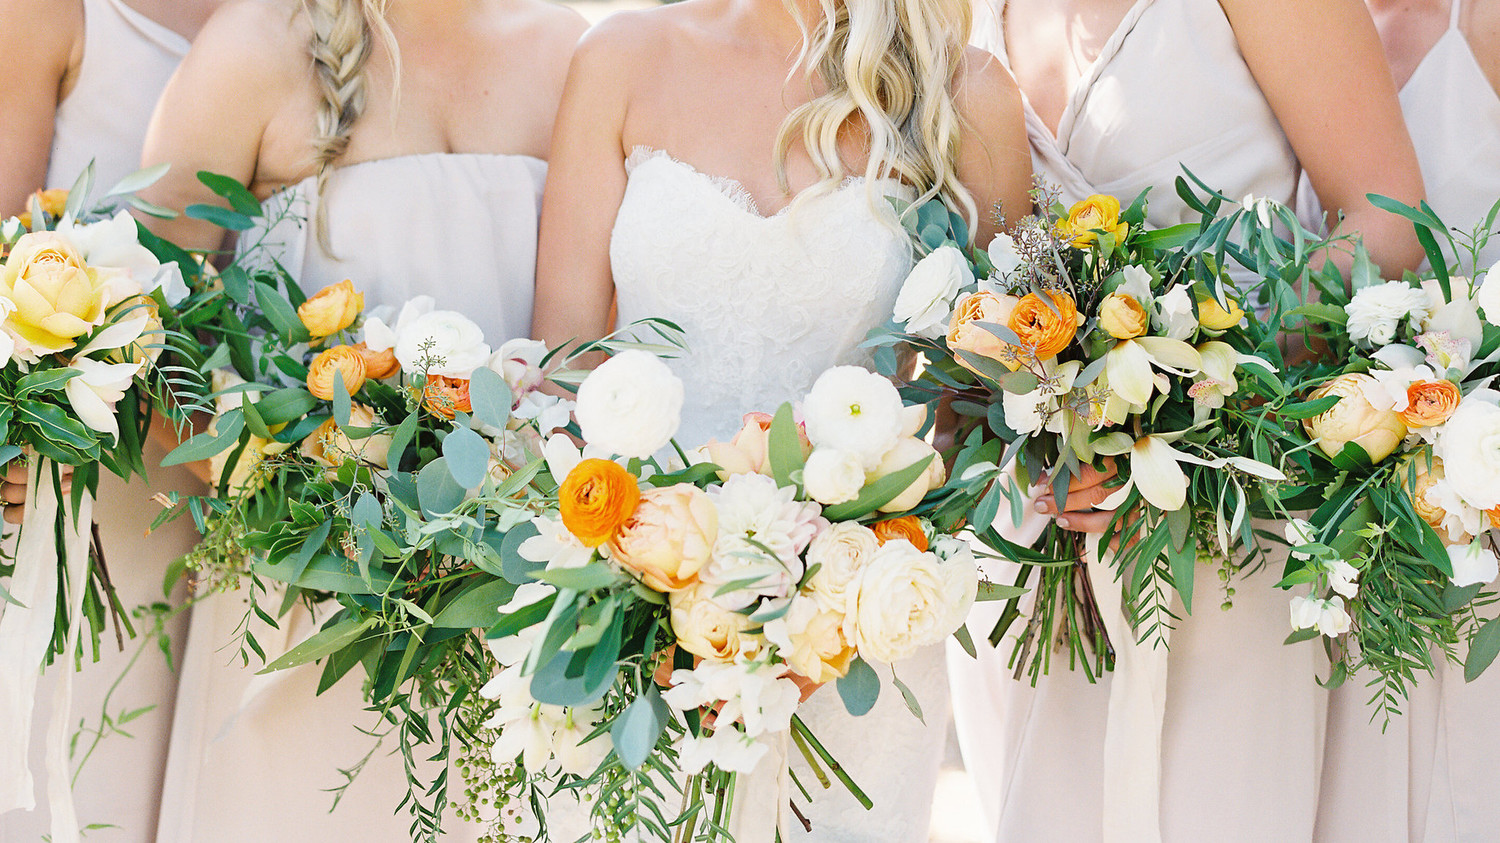 11 dos and donts for choosing your bridesmaids bouquets martha 11 dos and donts for choosing your bridesmaids bouquets martha stewart weddings izmirmasajfo